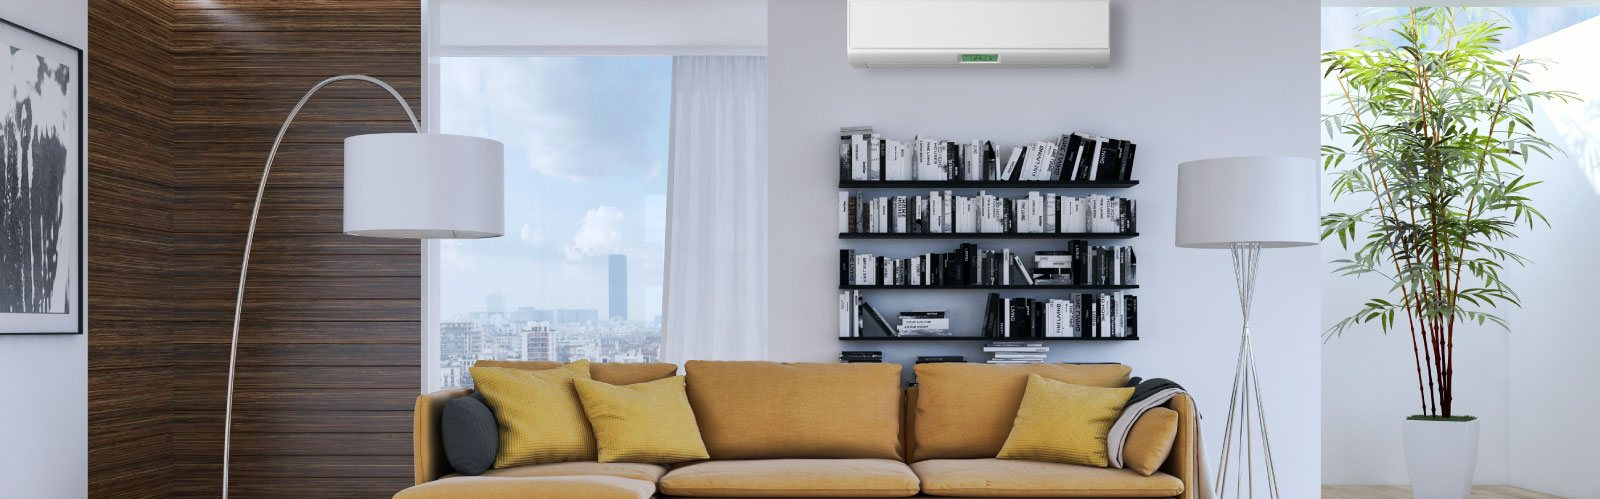 Start saving on your heating & a/c bills with a ductless mini split system! Call At Temp today to get yours!